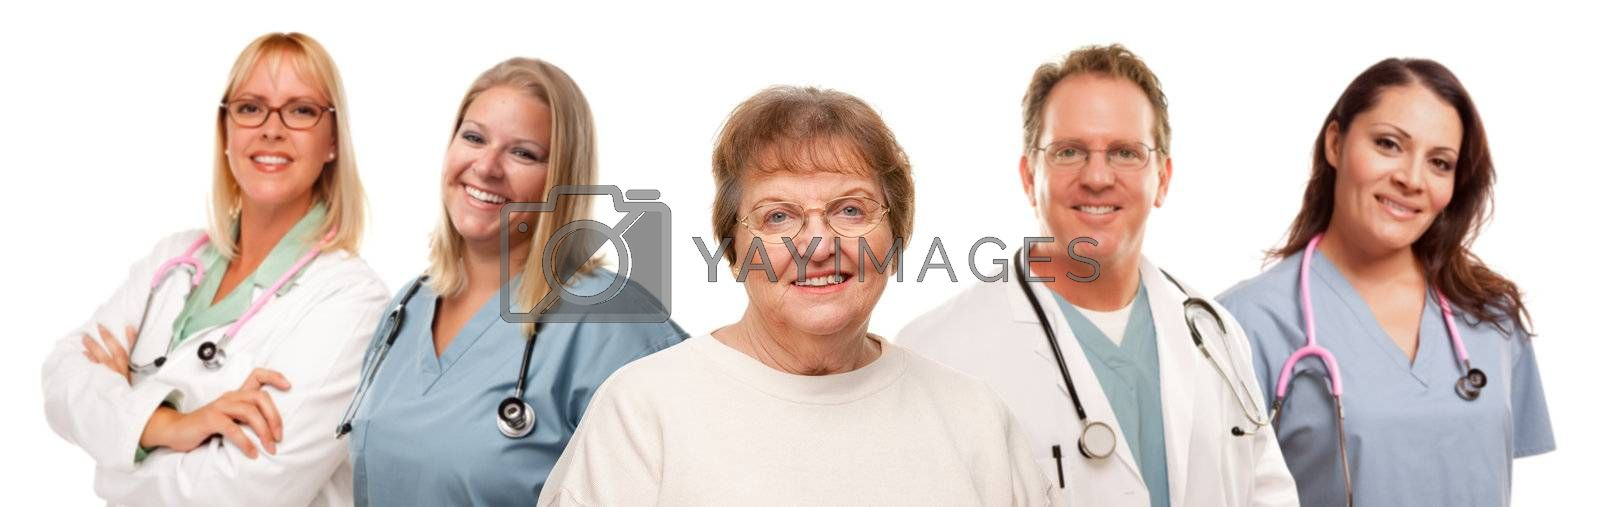 Smiling Senior Woman with Medical Doctors and Nurses Behind Isolated on a White Background.